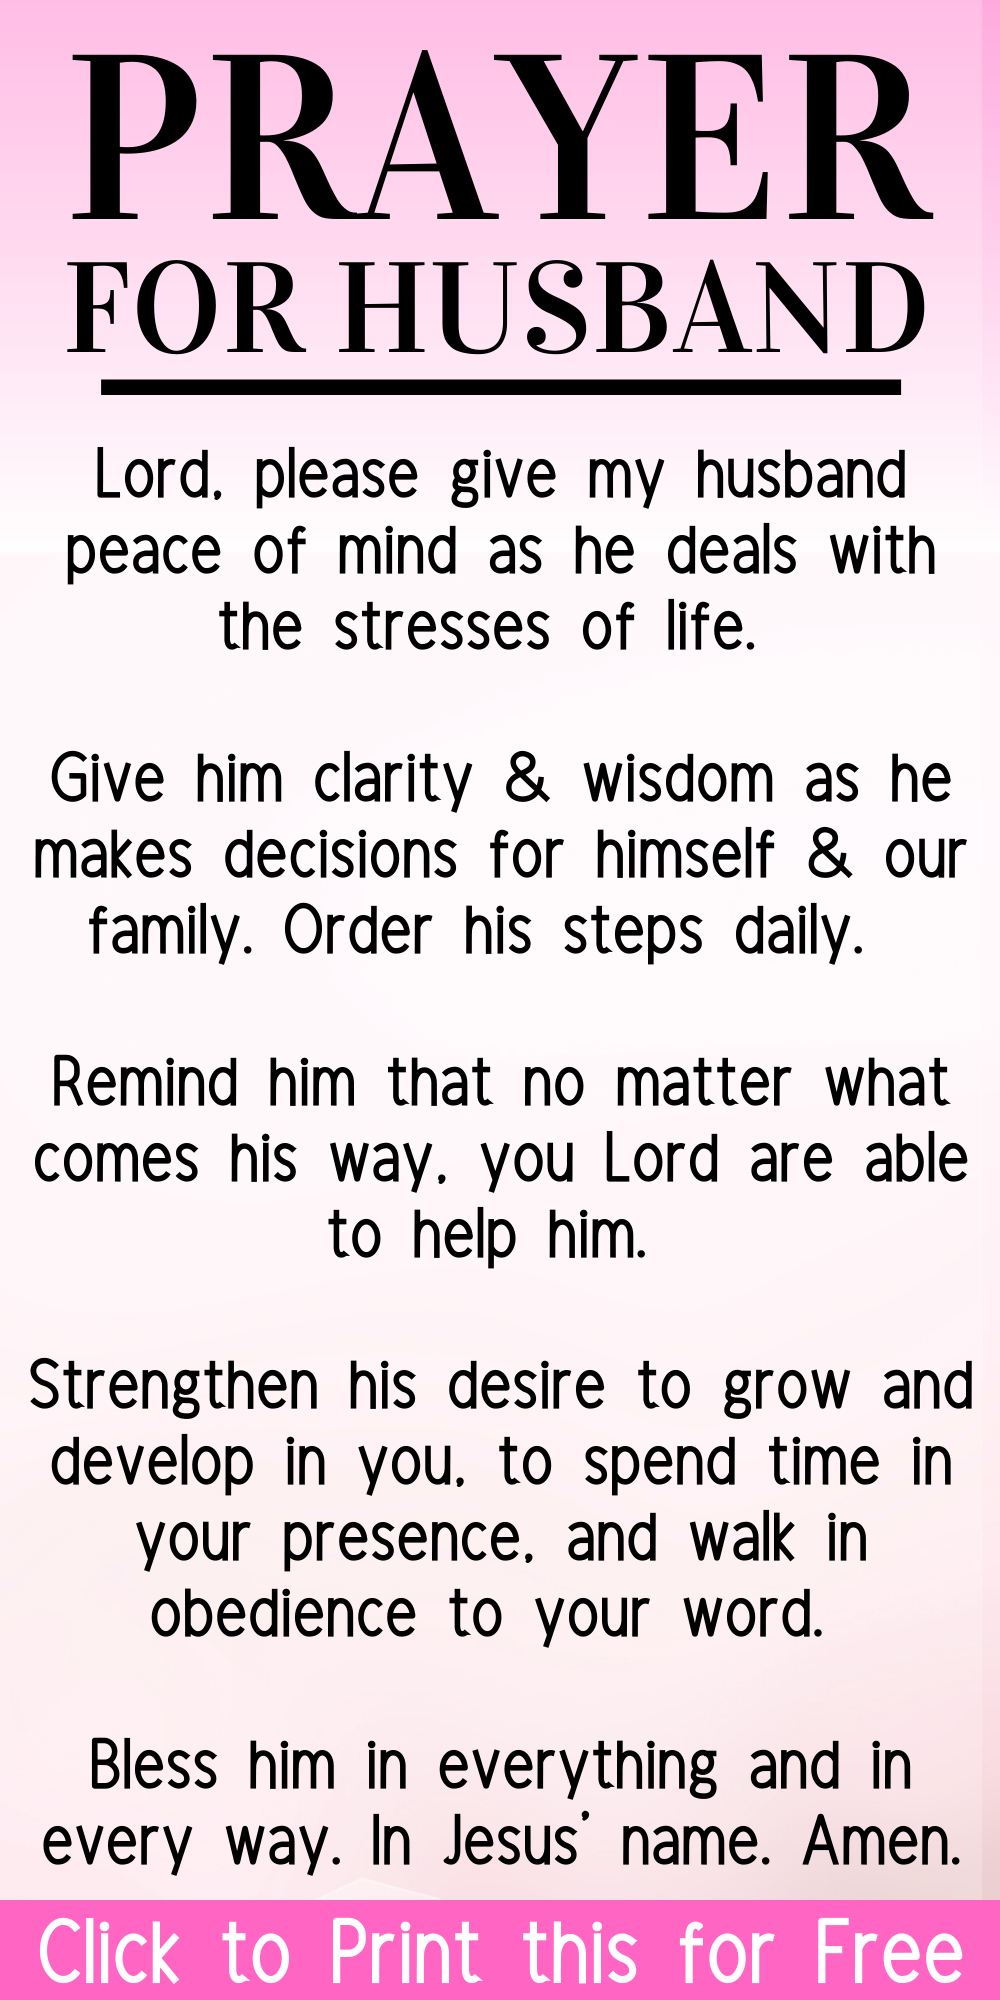 Prayer for your Husband (Print it for Free)